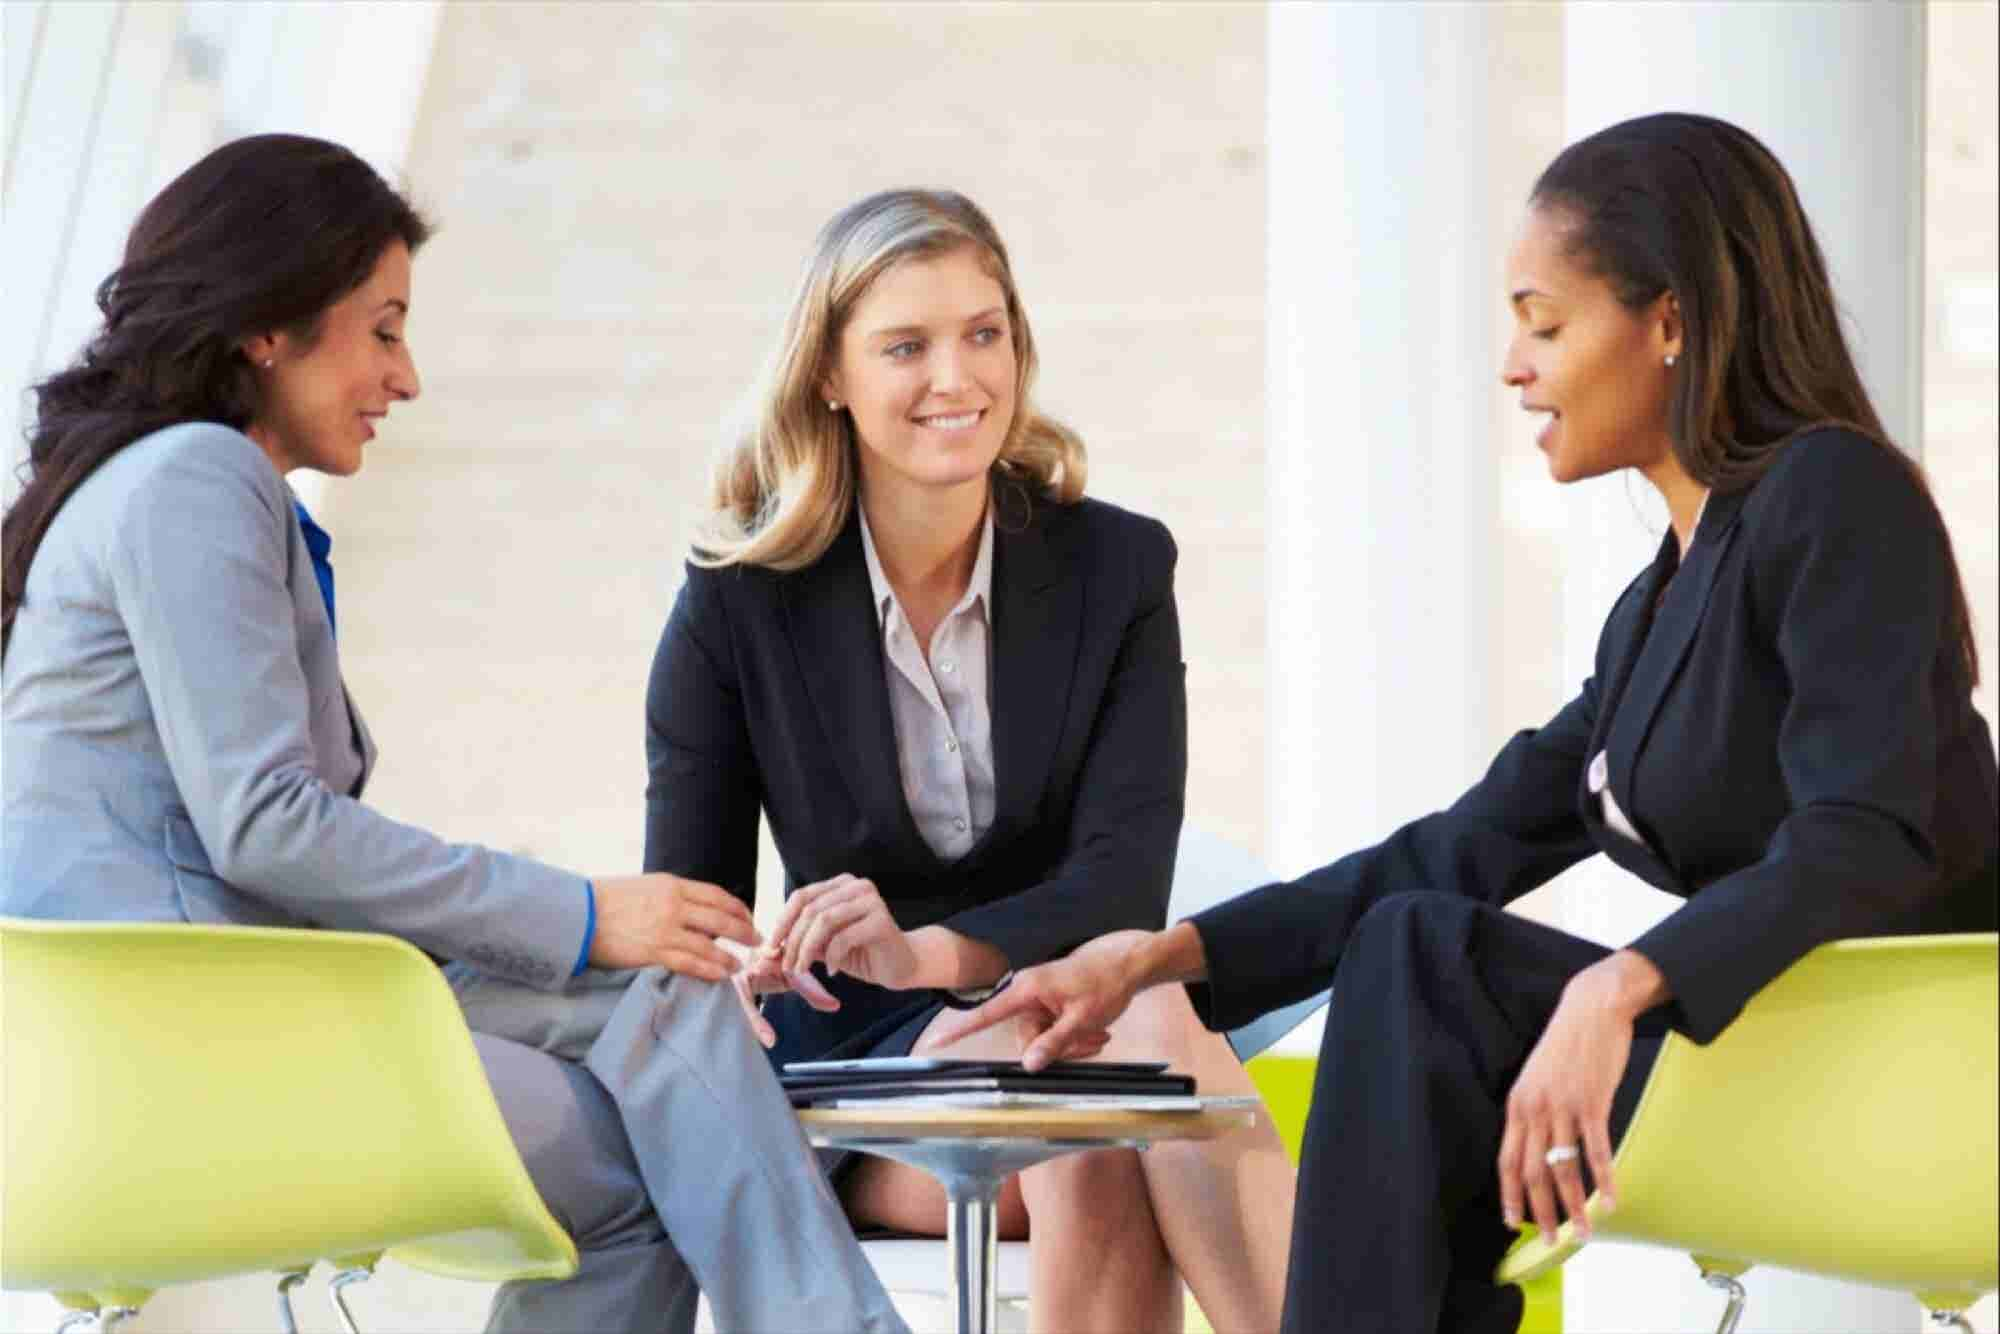 How Businesses Need to Change Their Leadership Style in a Tumultuous W...